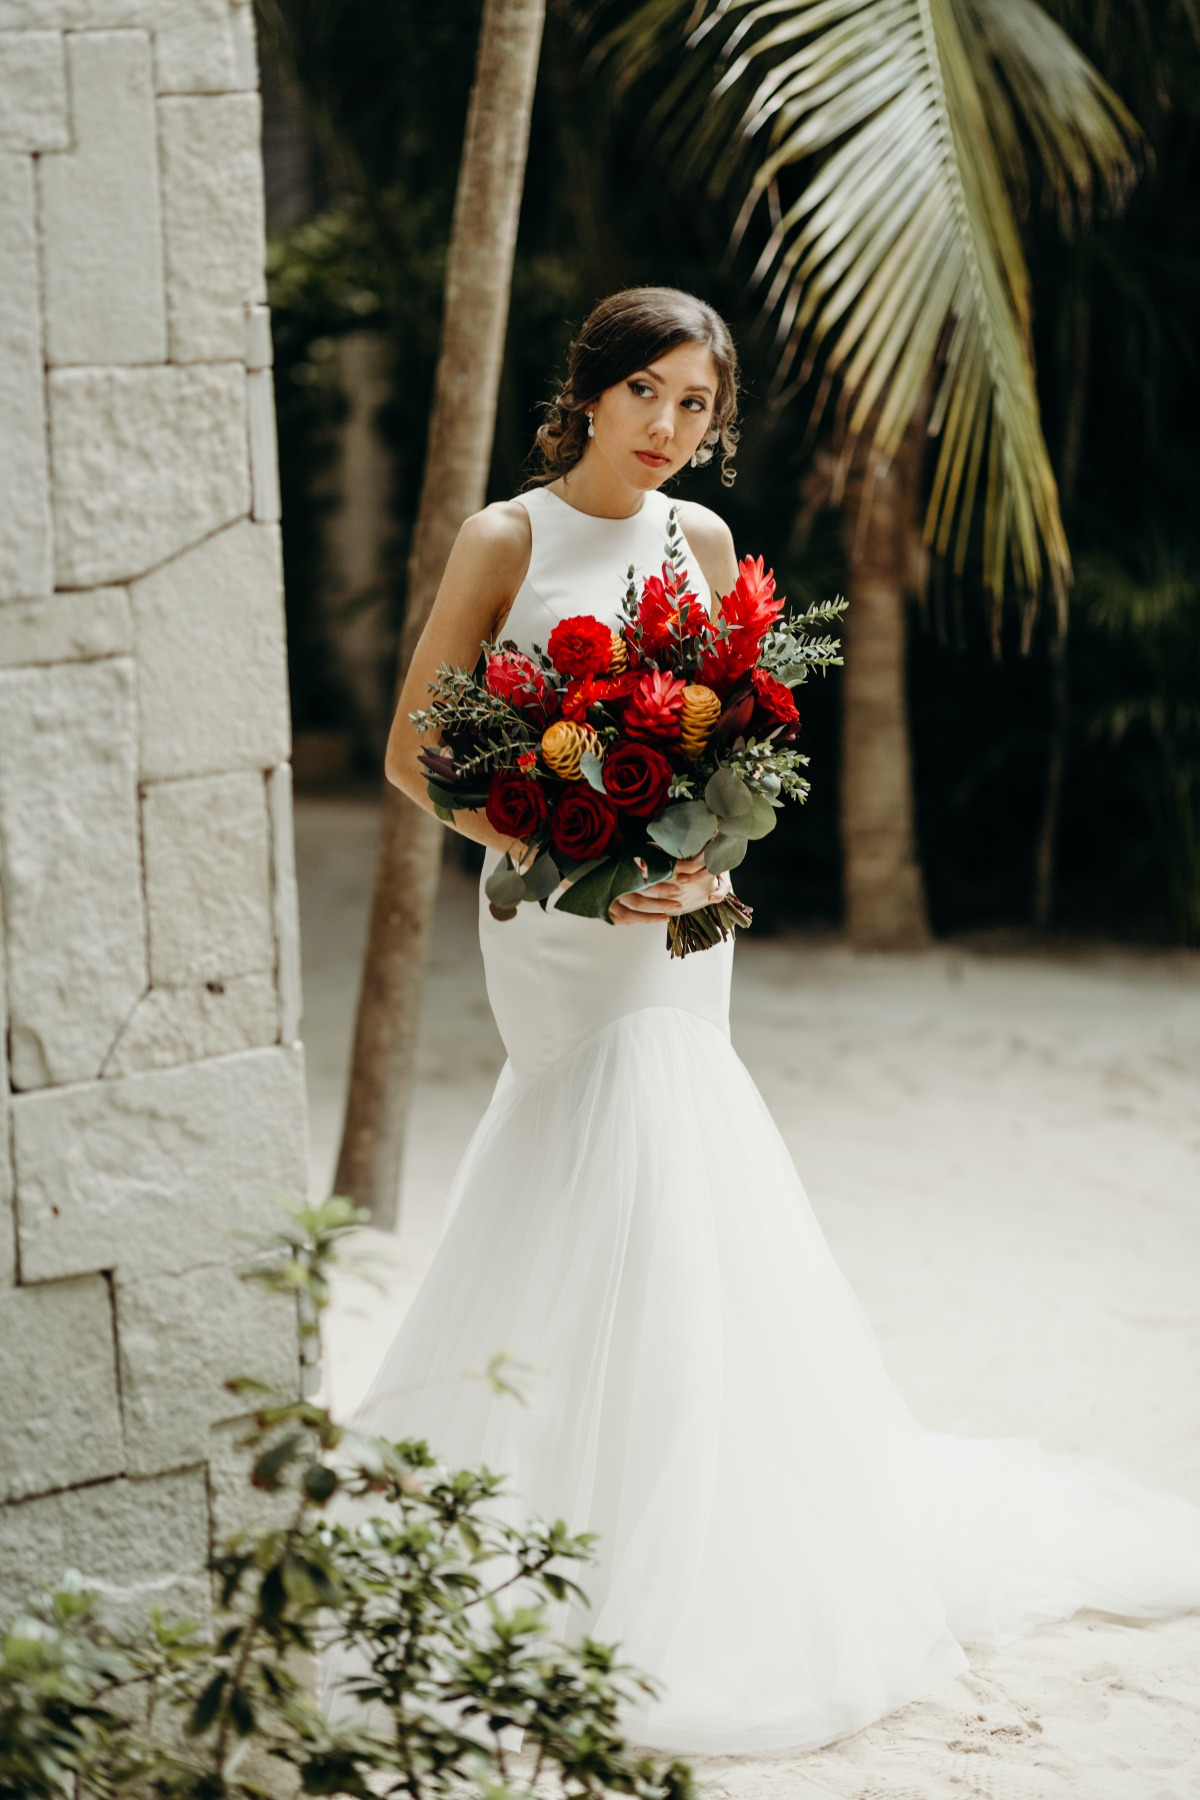 Mermaid wedding dress paired with tropical wedding bouquet